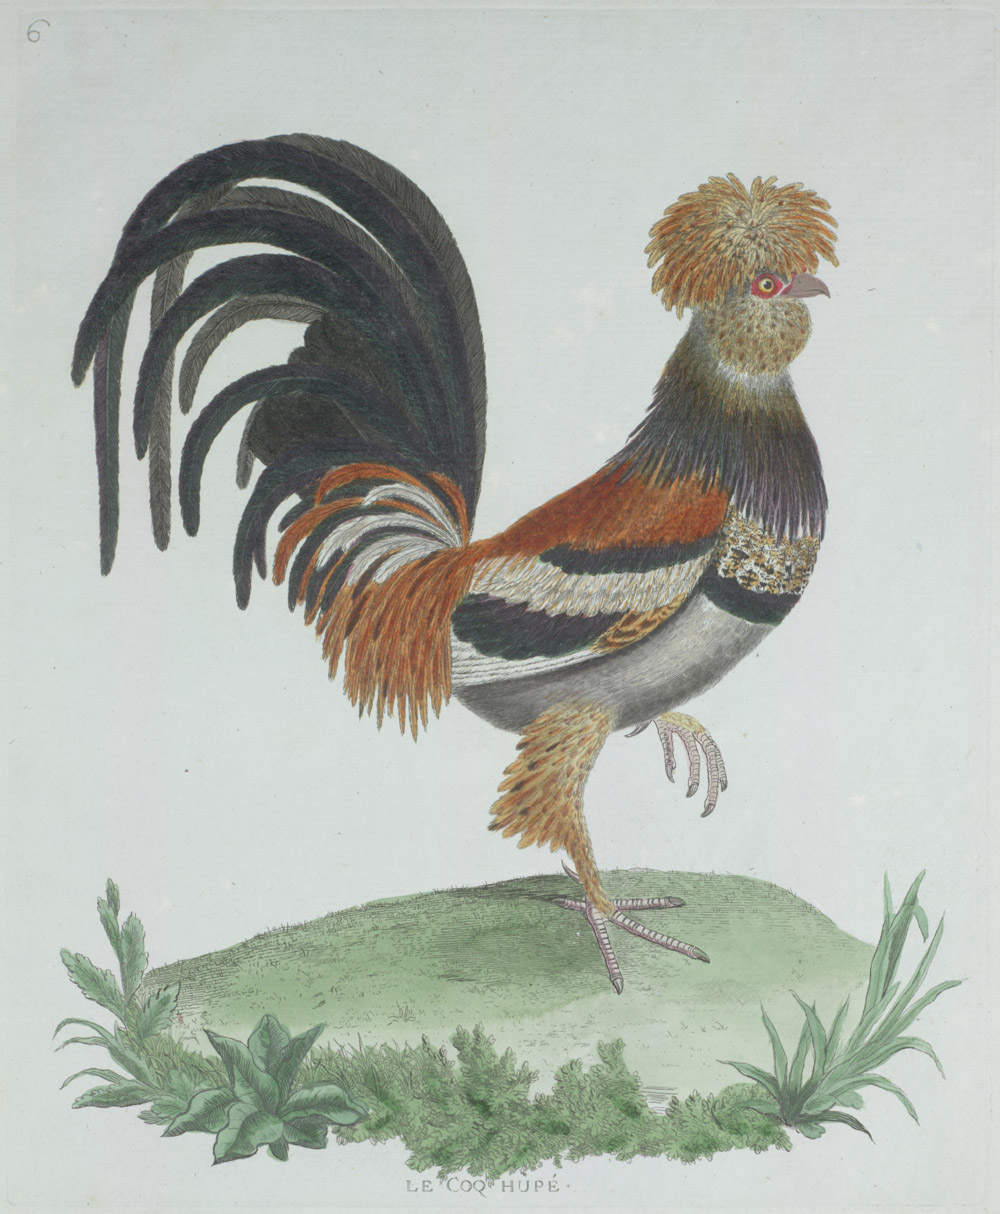 Plate 6: Le Coq Hupé,  Image number:SIL13-1-17b